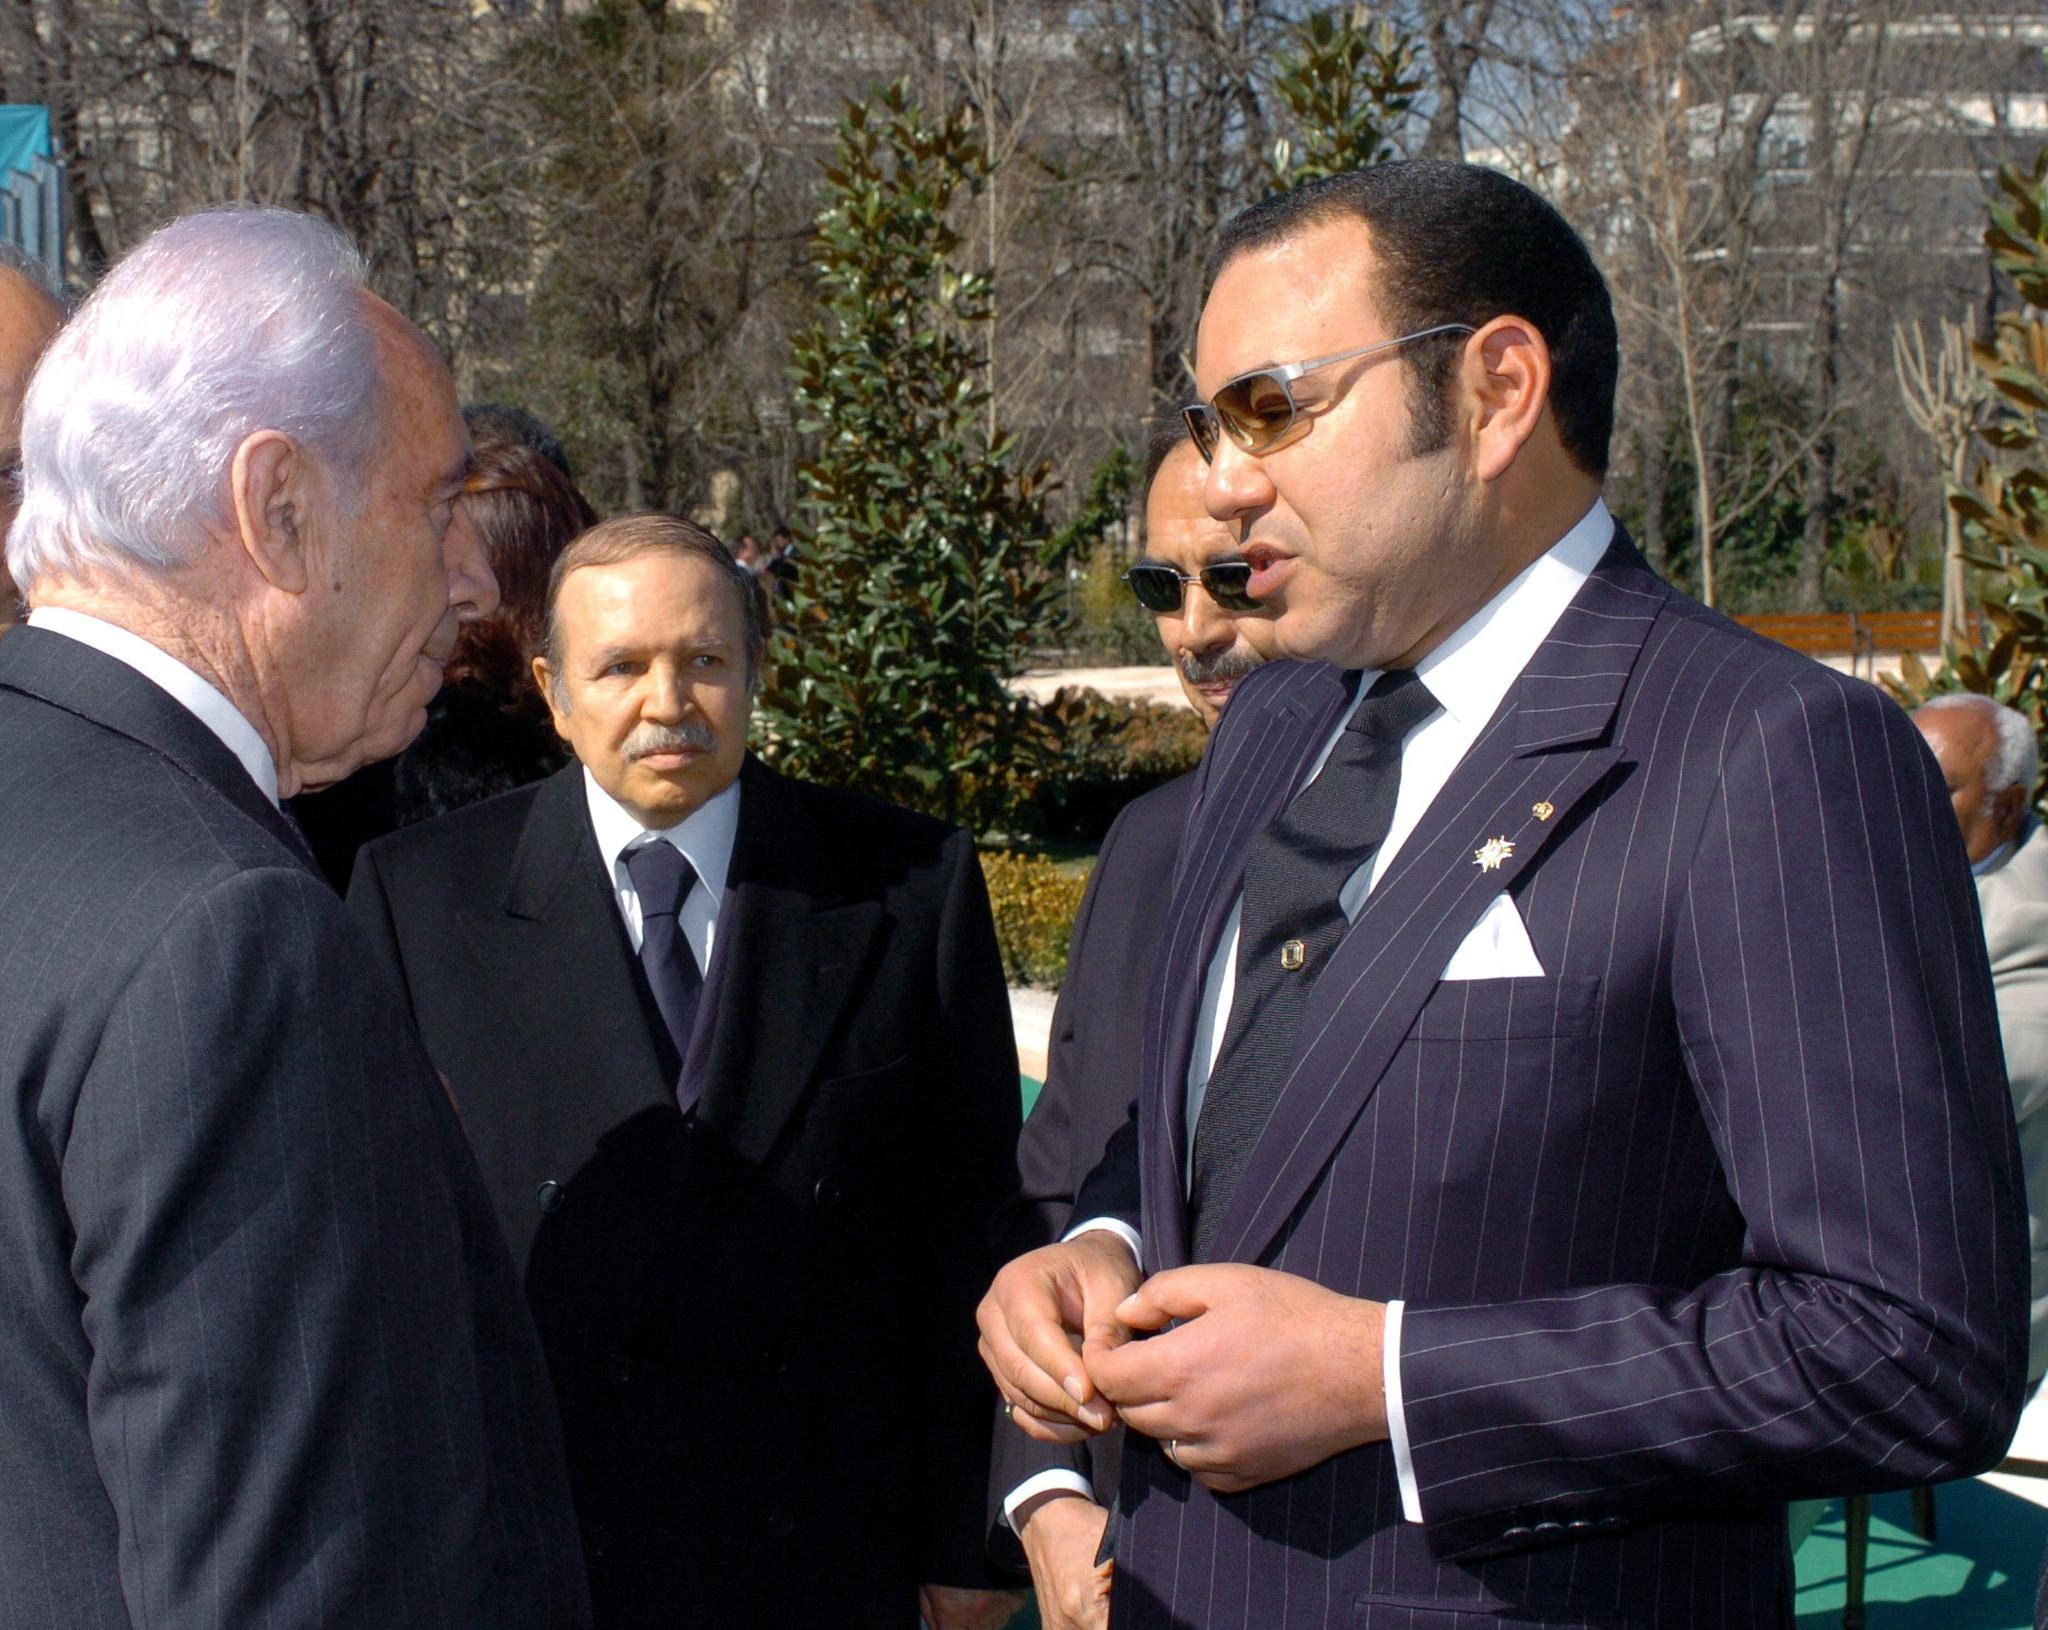 King of Morocco Mohamed VI (L) chats with Israeli Deputy Prime Minister Shimon Peres (R) as President of Algeria Abdelaziz Bouteflika (C) looks on, 11 March 2005